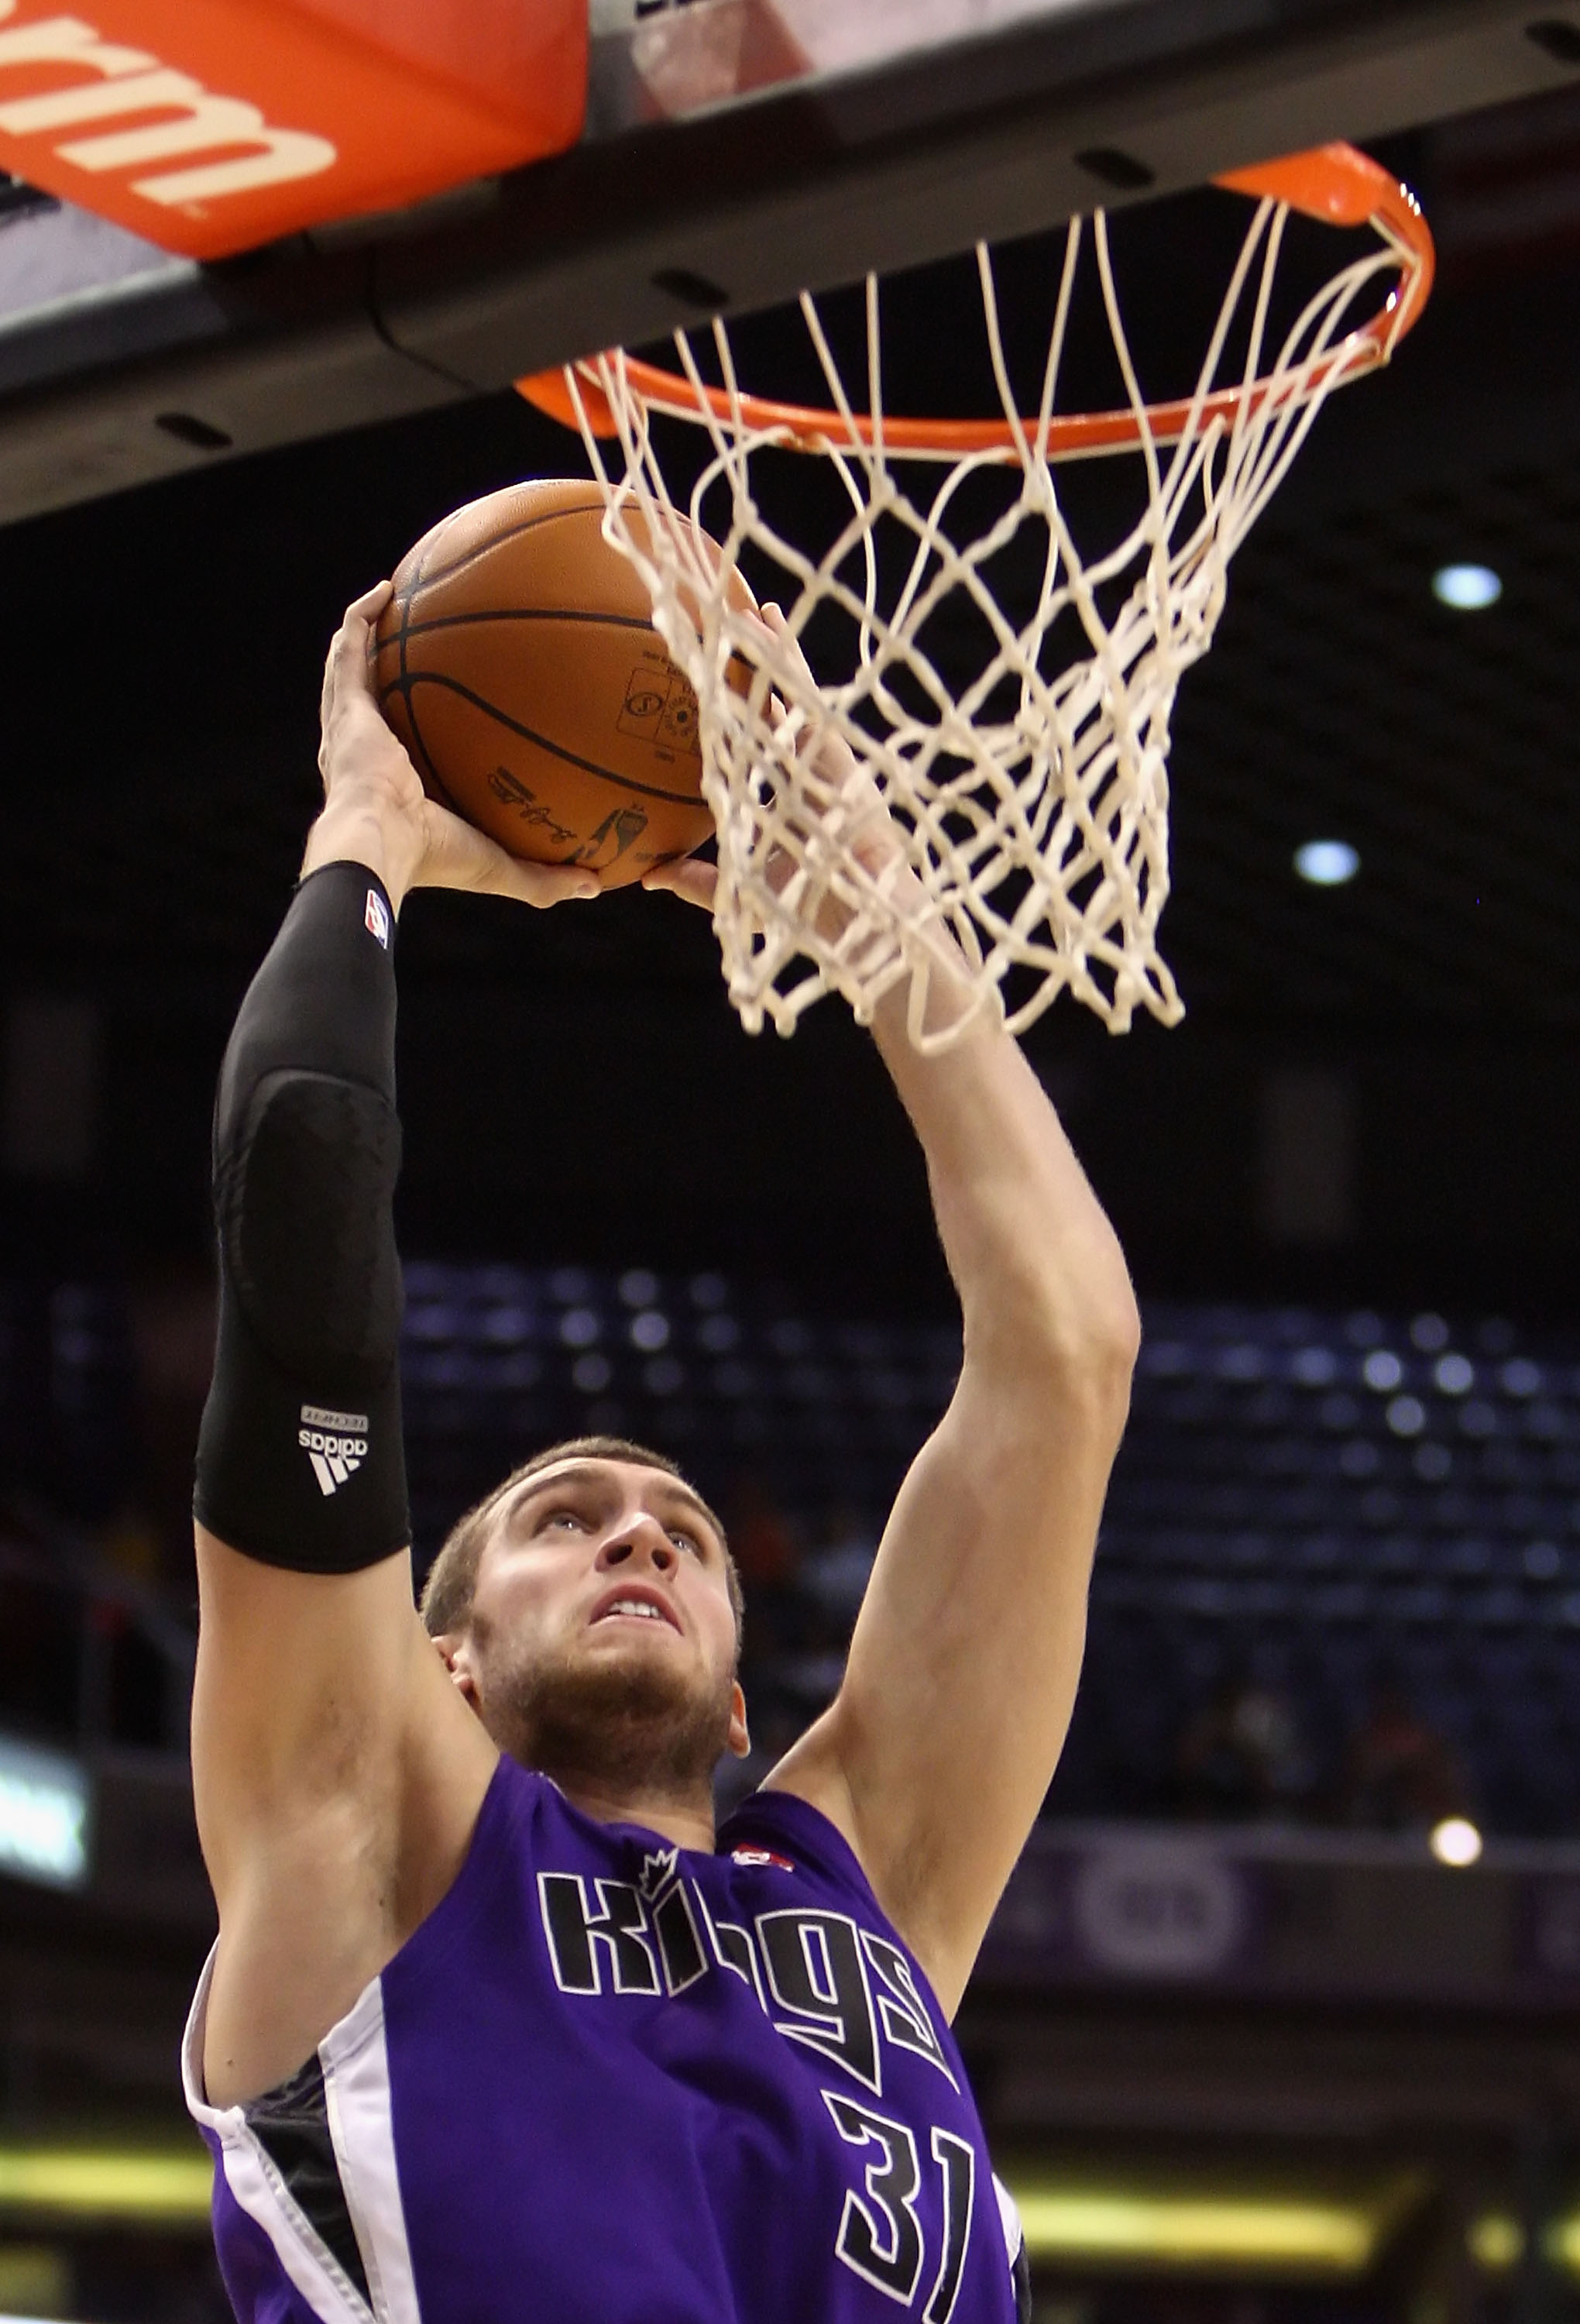 PHOENIX - OCTOBER 20:  Spencer Hawes #31 of the Sacramento Kings slam dunks the ball against the Phoenix Suns during the NBA preseason game at US Airways Center on October 20, 2009 in Phoenix, Arizona. The Suns defeated the Kings 143-127.  NOTE TO USER: U